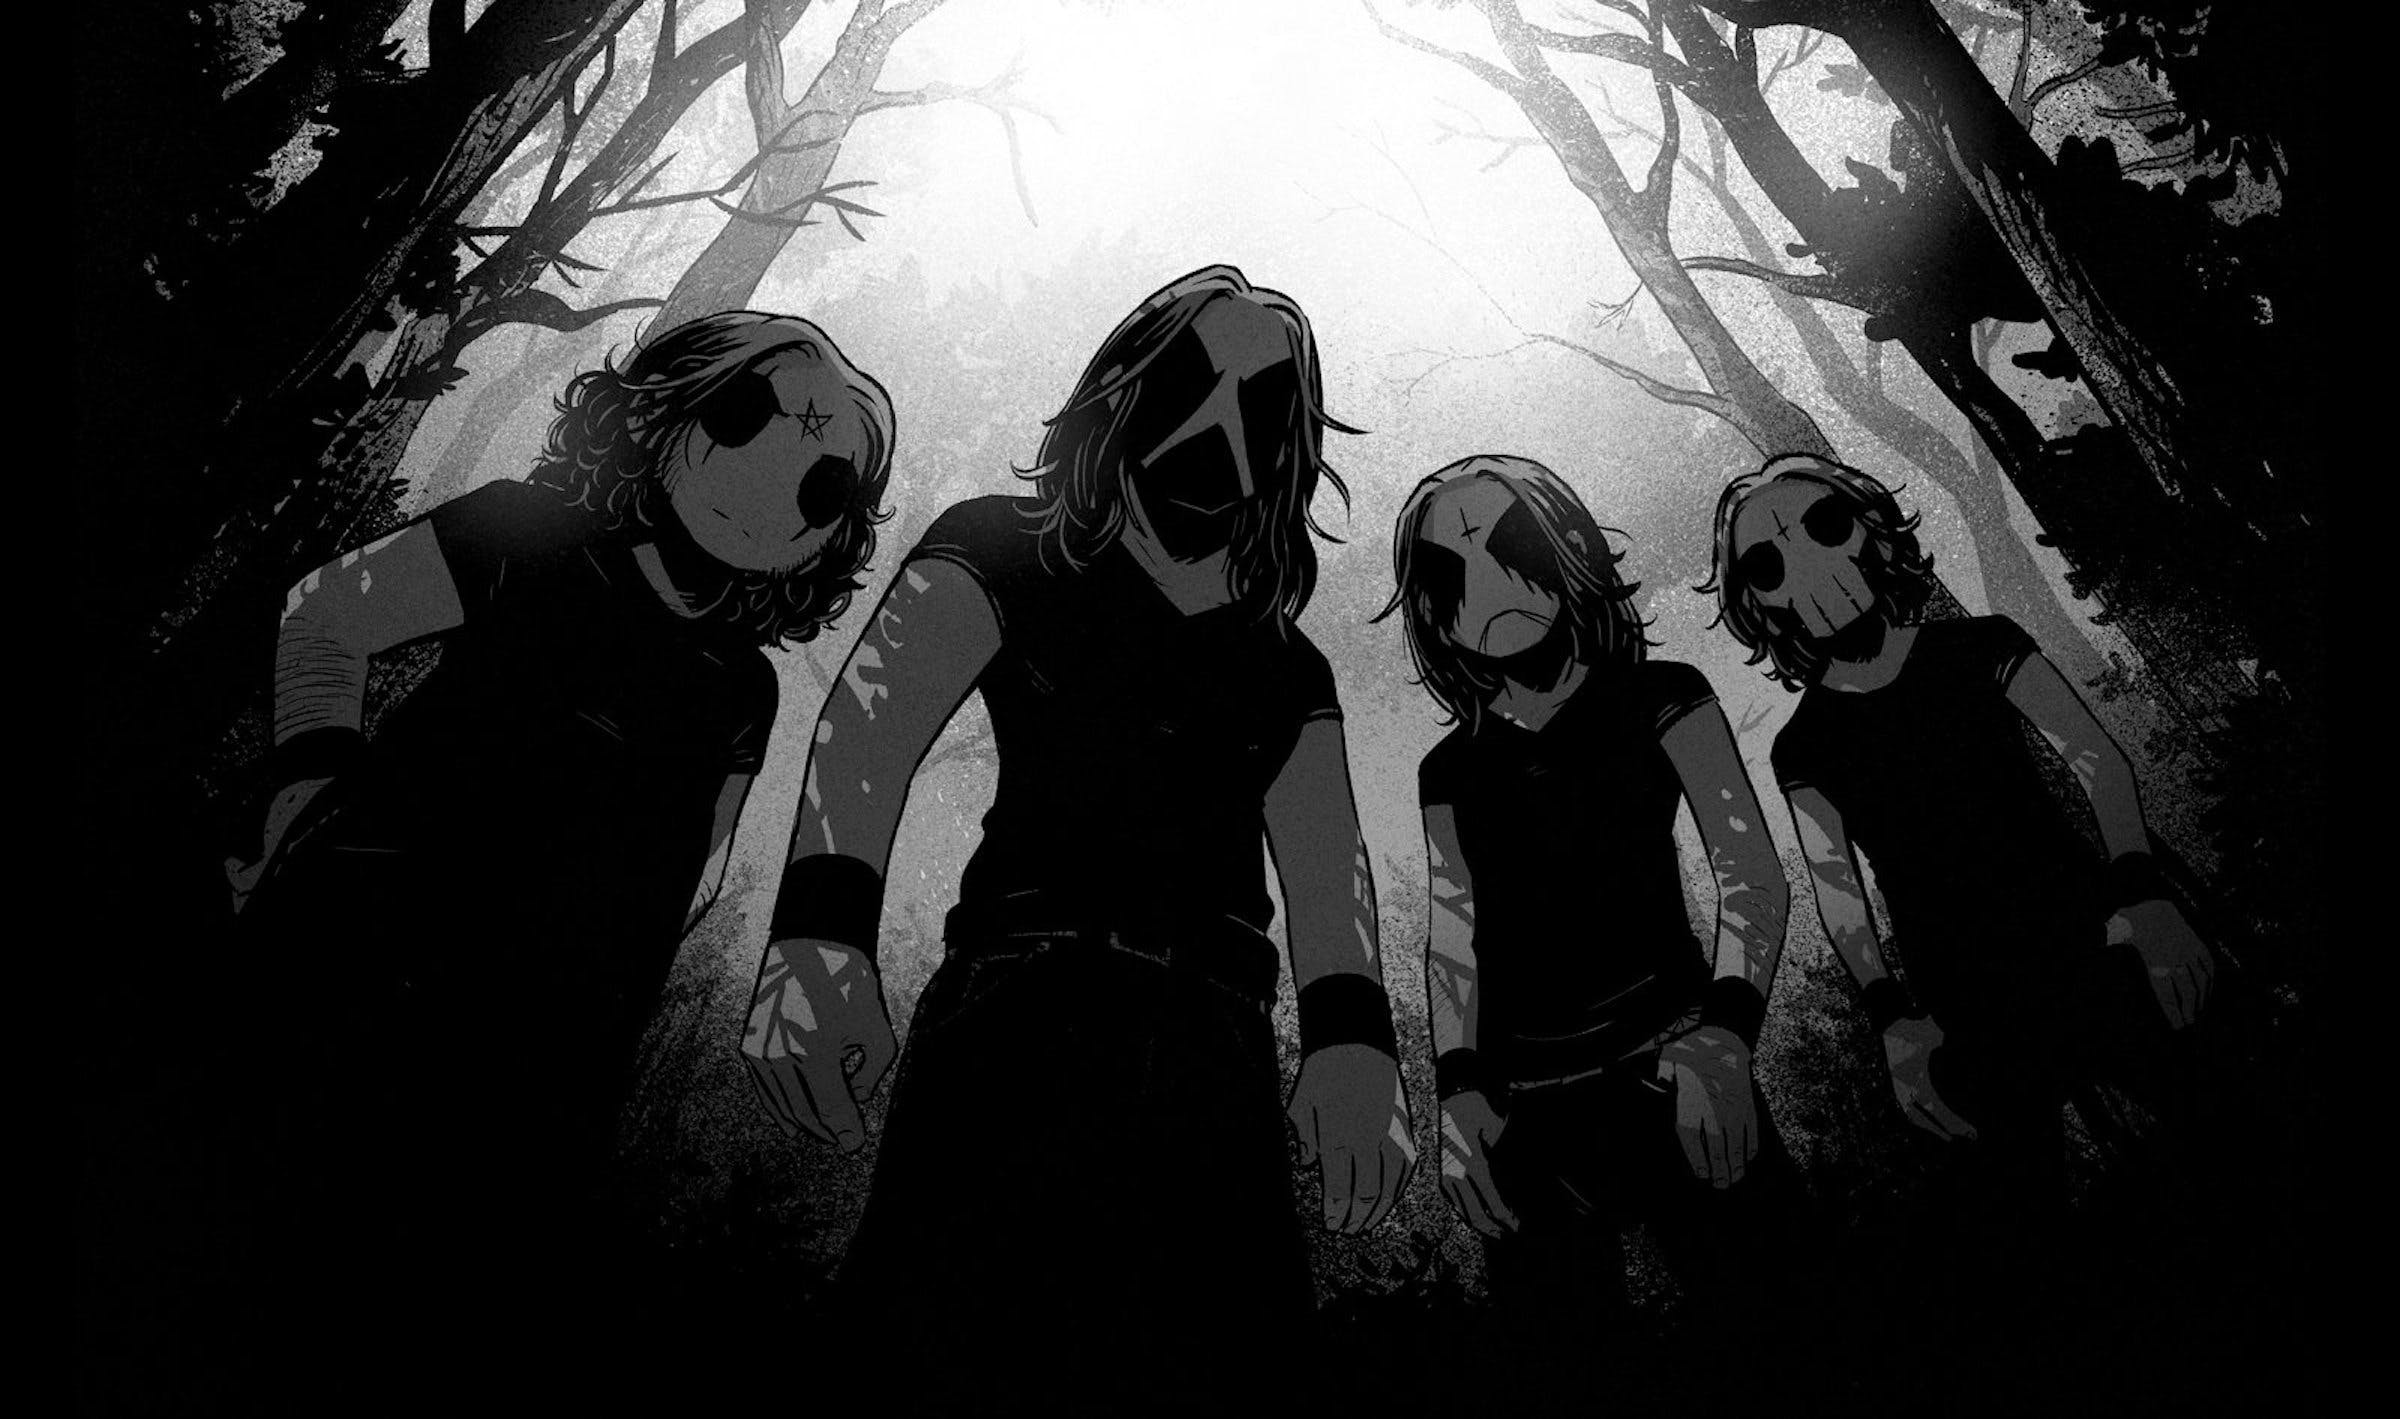 Belzebubs Are Your Favorite Cartoon Black Metal Band